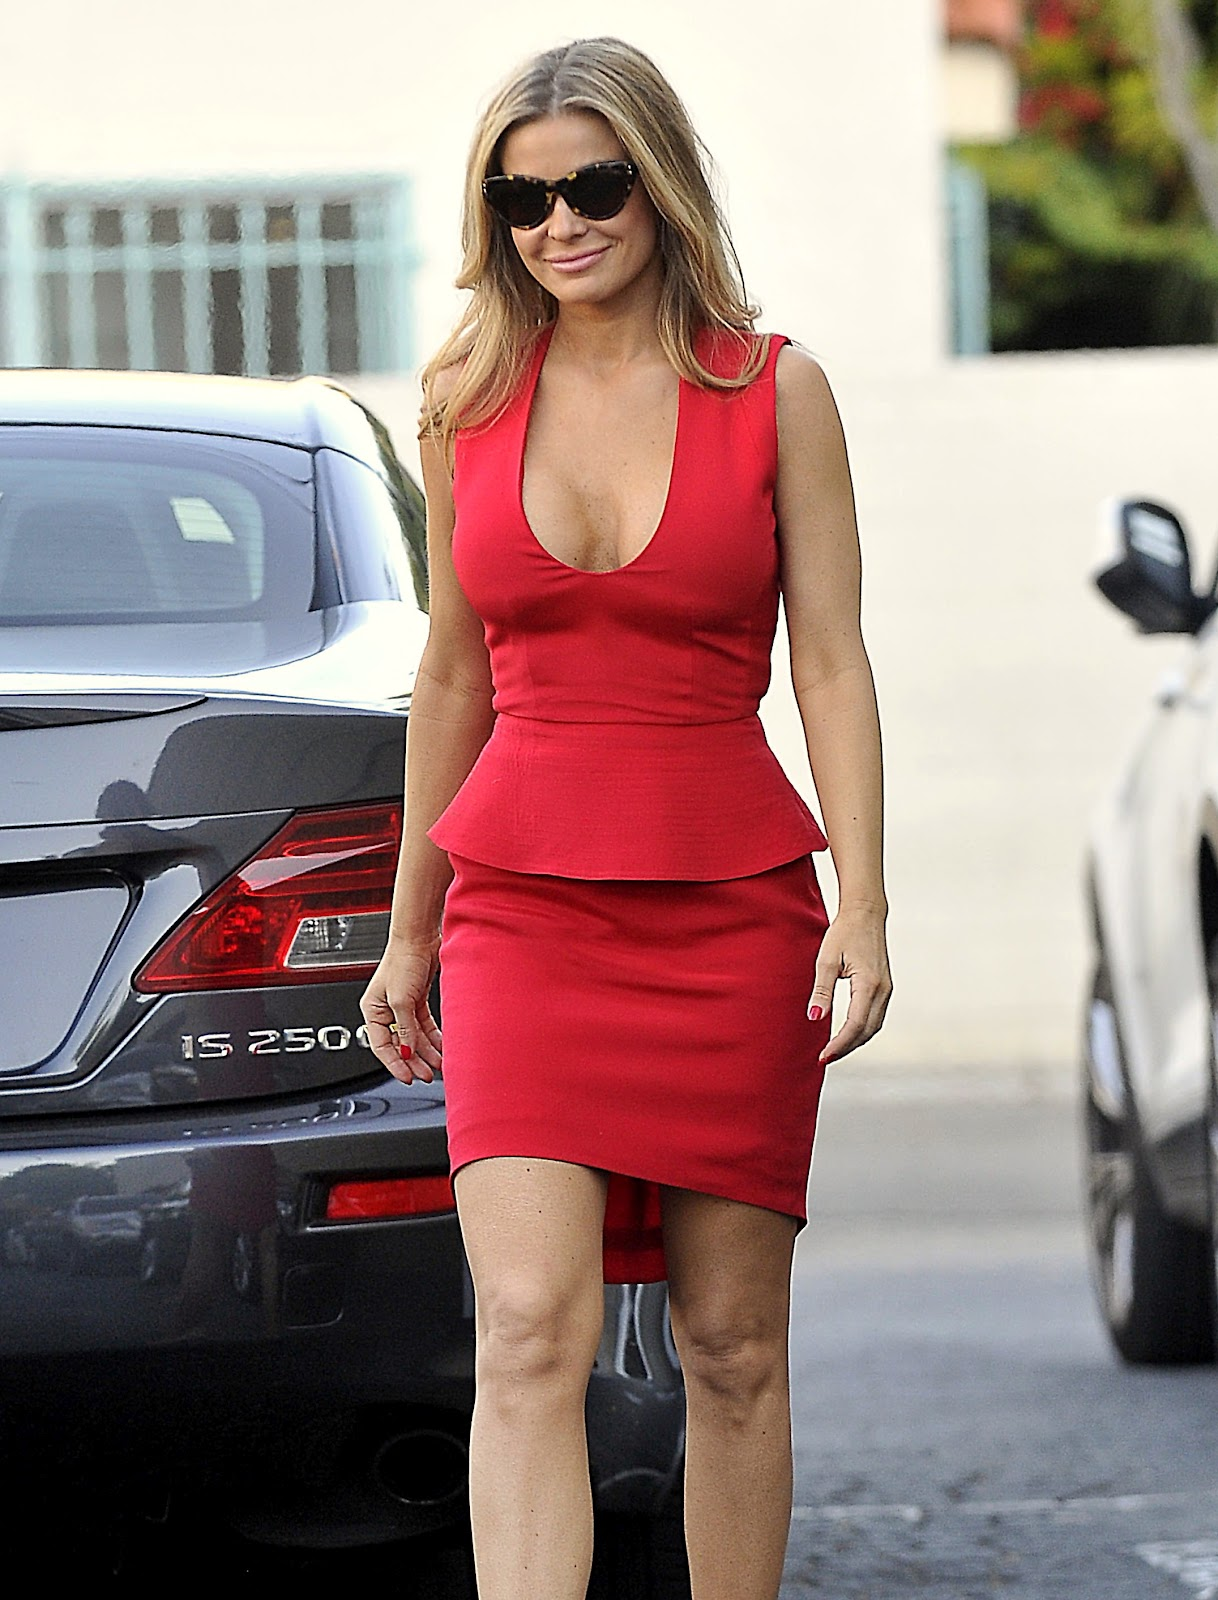 http://2.bp.blogspot.com/-fq-WHlR_Tu4/T-O-QVdl9FI/AAAAAAAAIvs/-n7qdPzPGws/s1600/Carmen+Electra+in+a+Red+Low+Cut+Dress.jpg